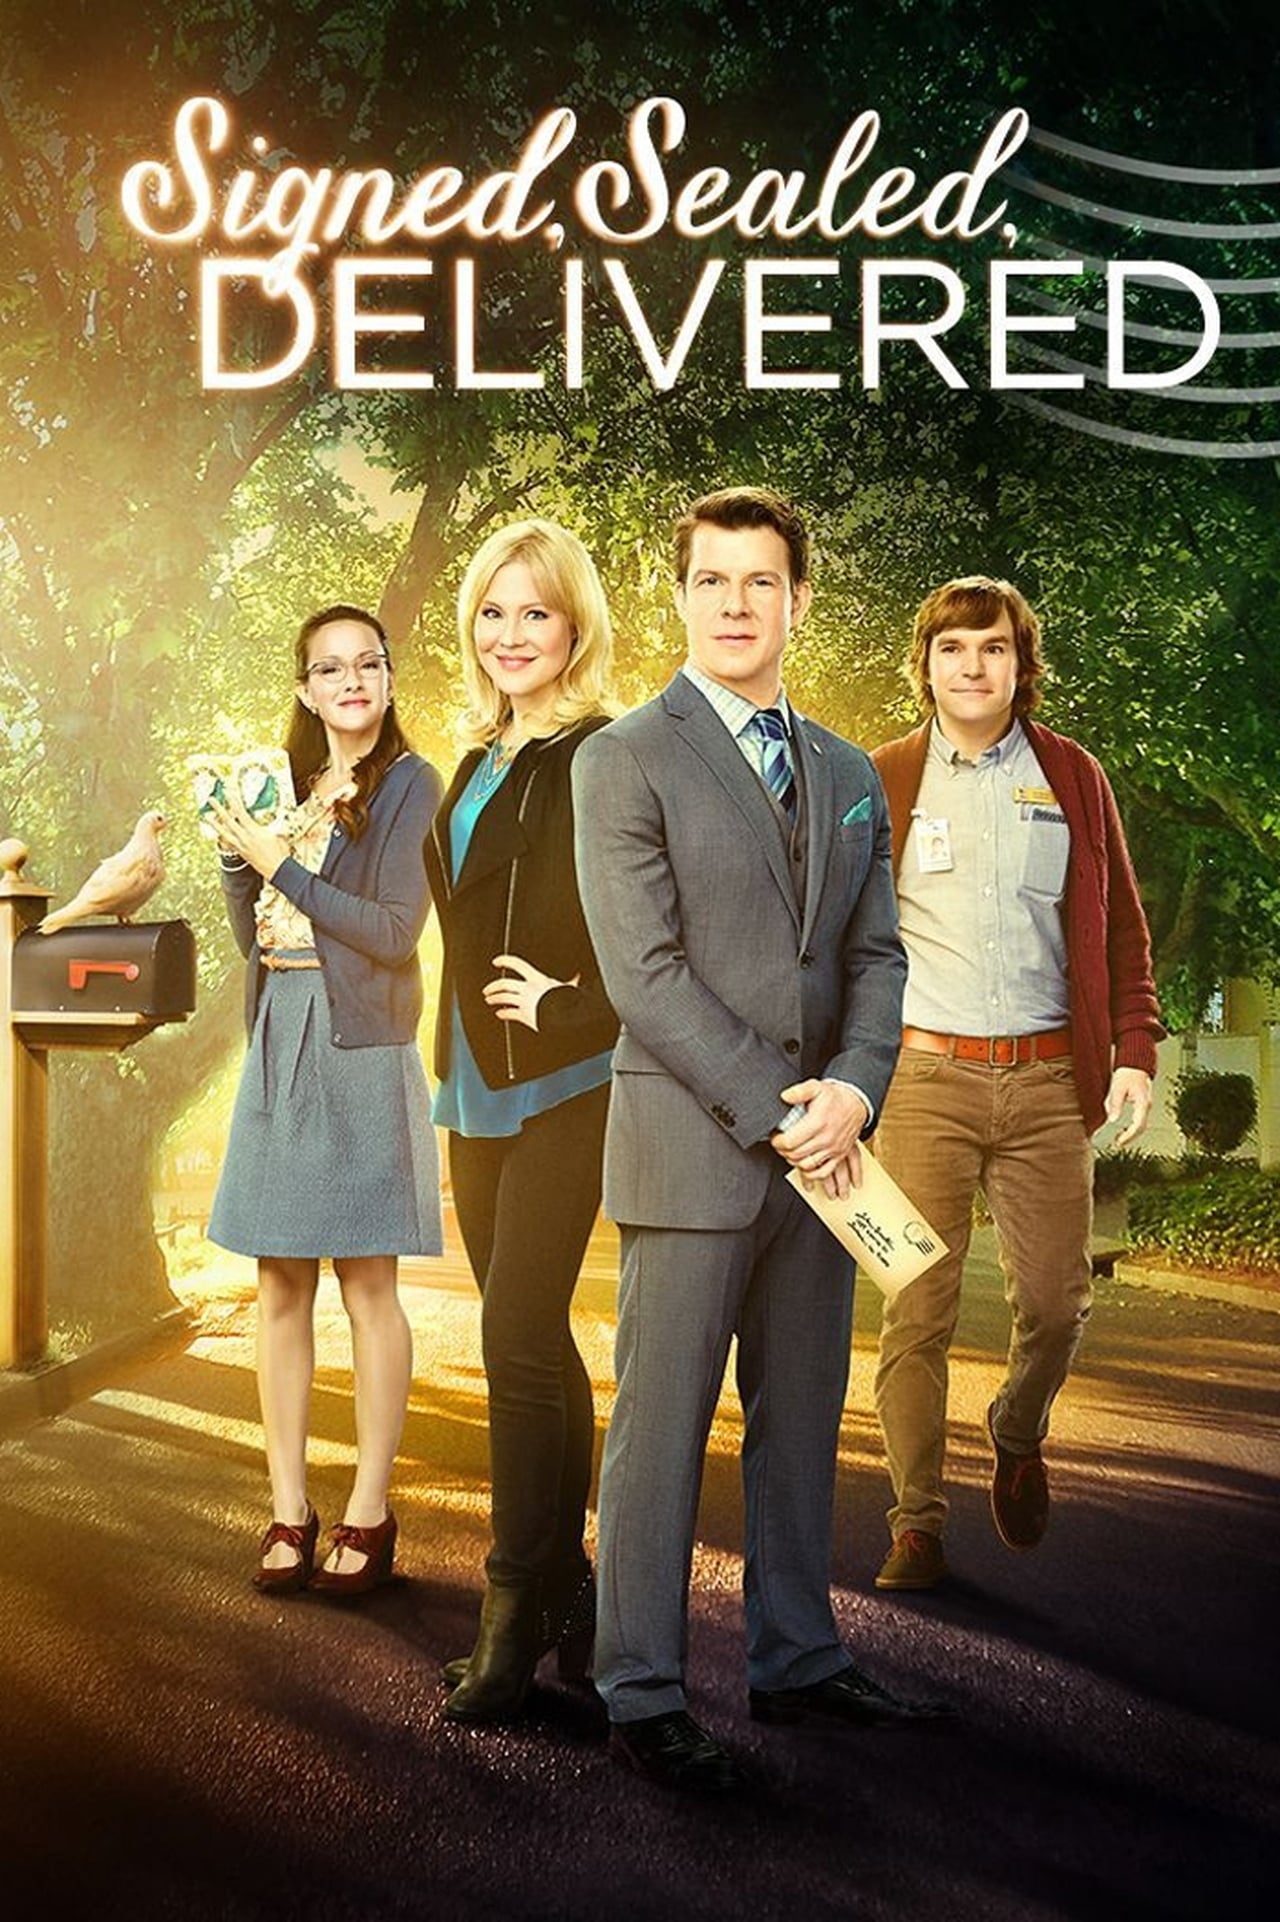 Putlocker Signed, Sealed, Delivered Season 0 (2013)